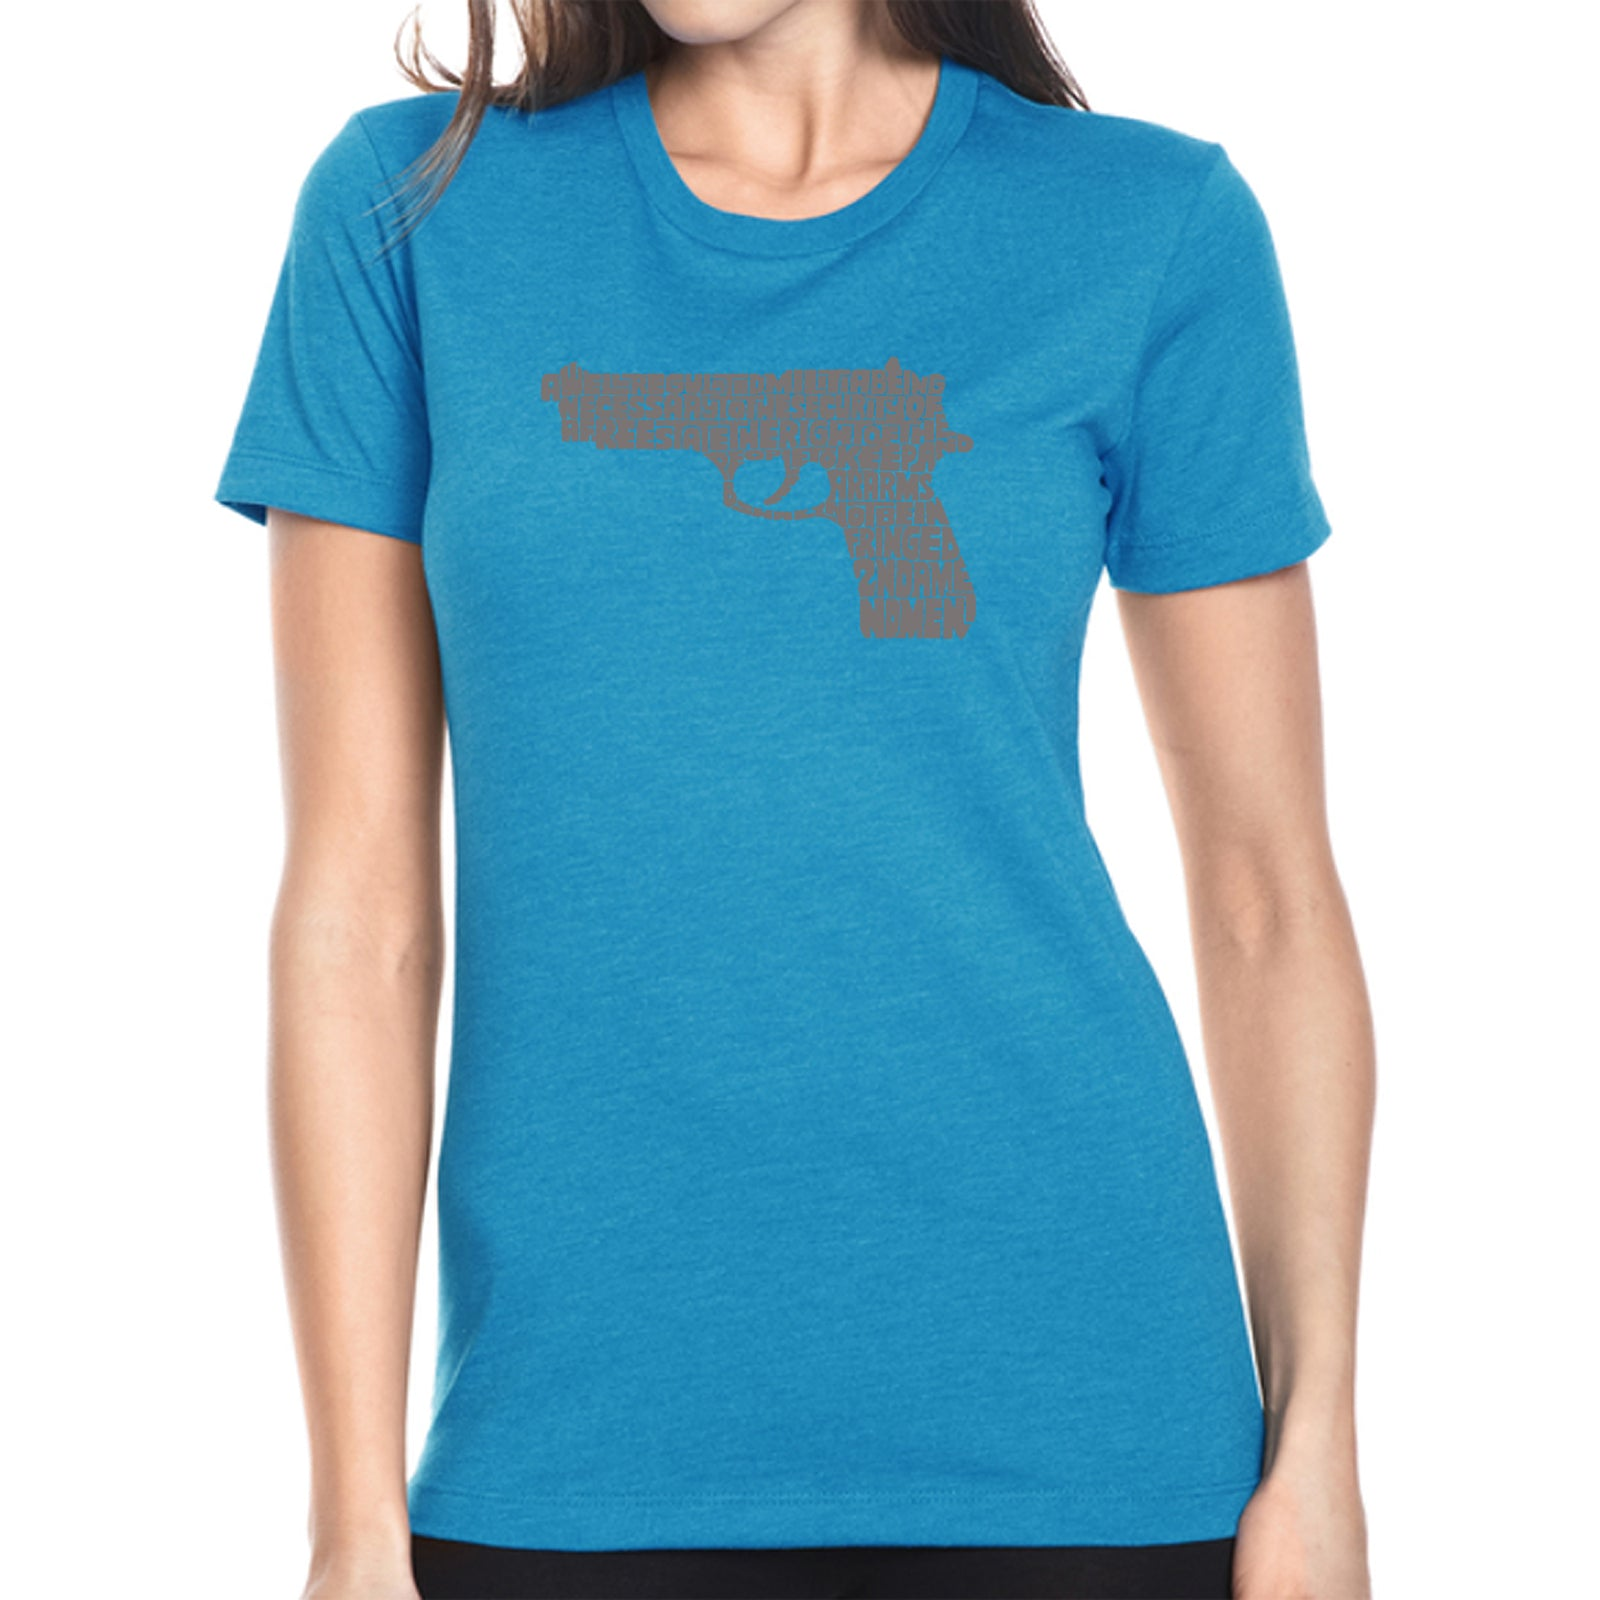 Women's Premium Blend Word Art T-shirt - RIGHT TO BEAR ARMS